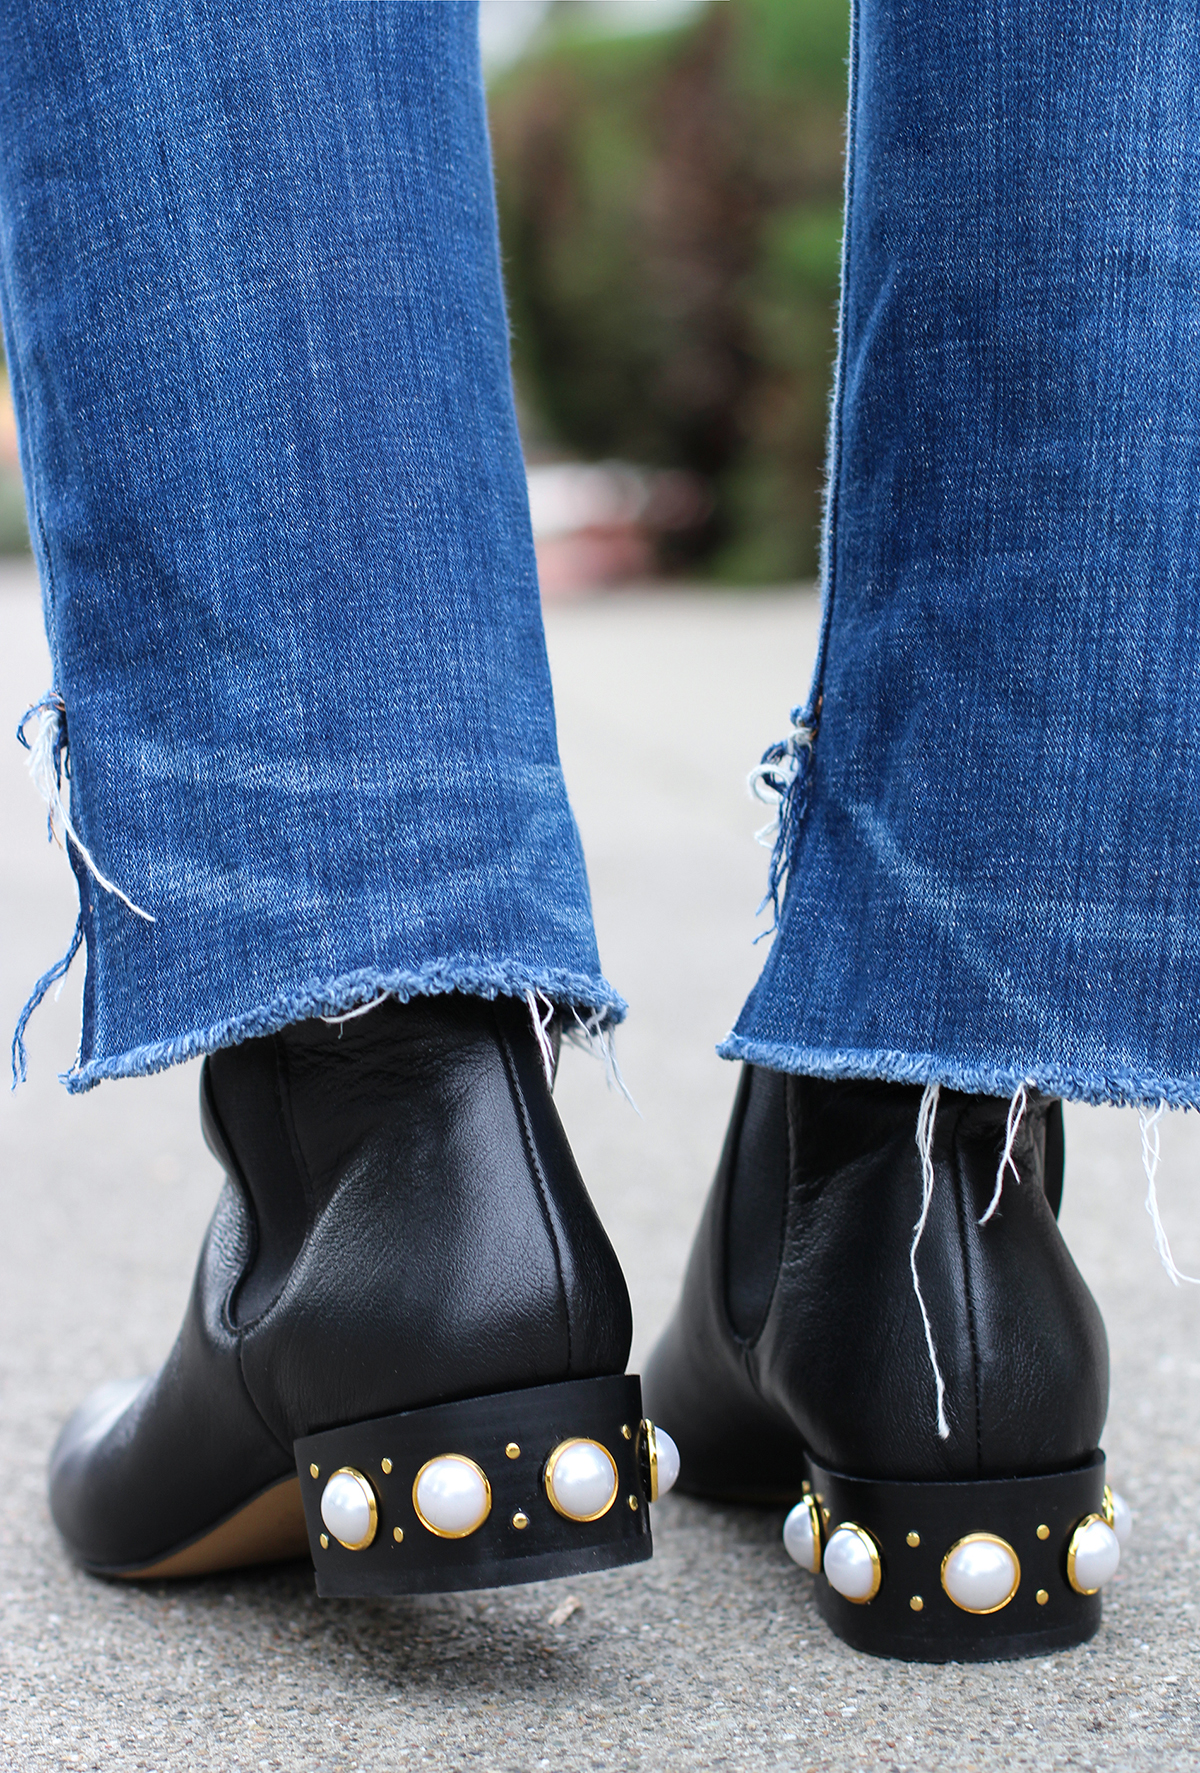 82f883771d86 DIY Pearl Studded Boots – Honestly WTF